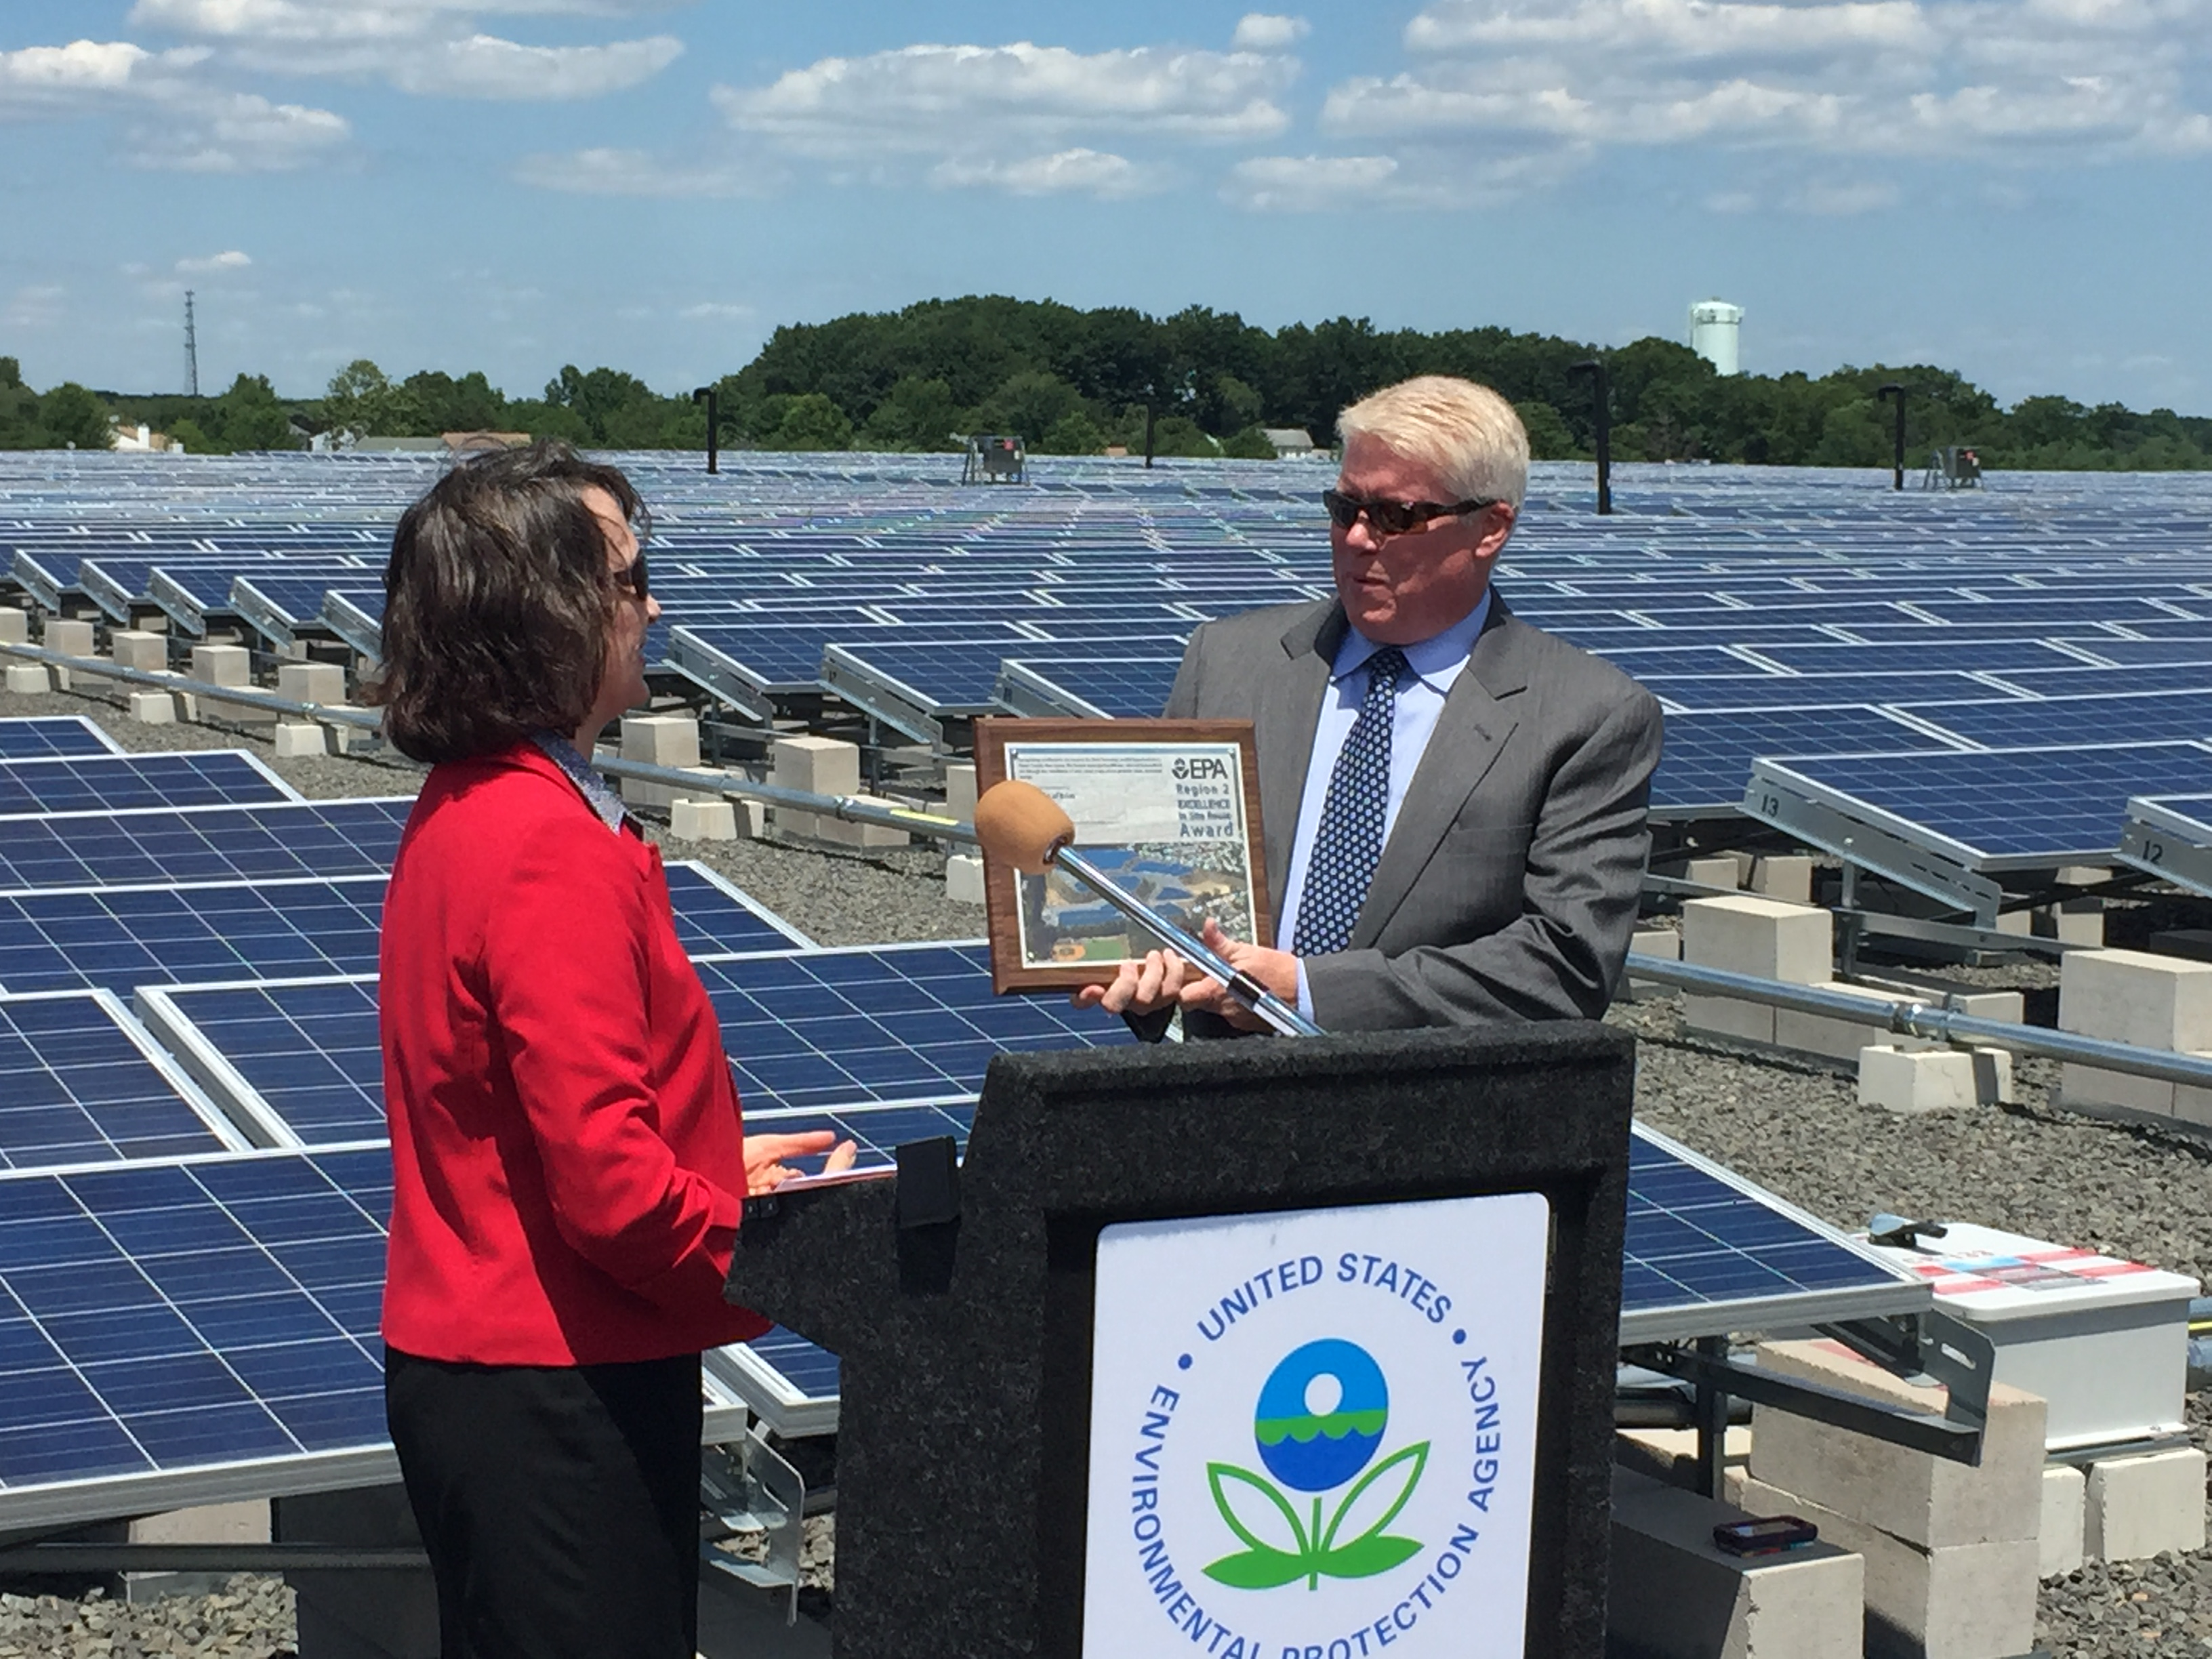 Mayor John Ducey receives an award from EPA Deputy Regional Administrator Catherine McCabe. (Photo: Daniel Nee)